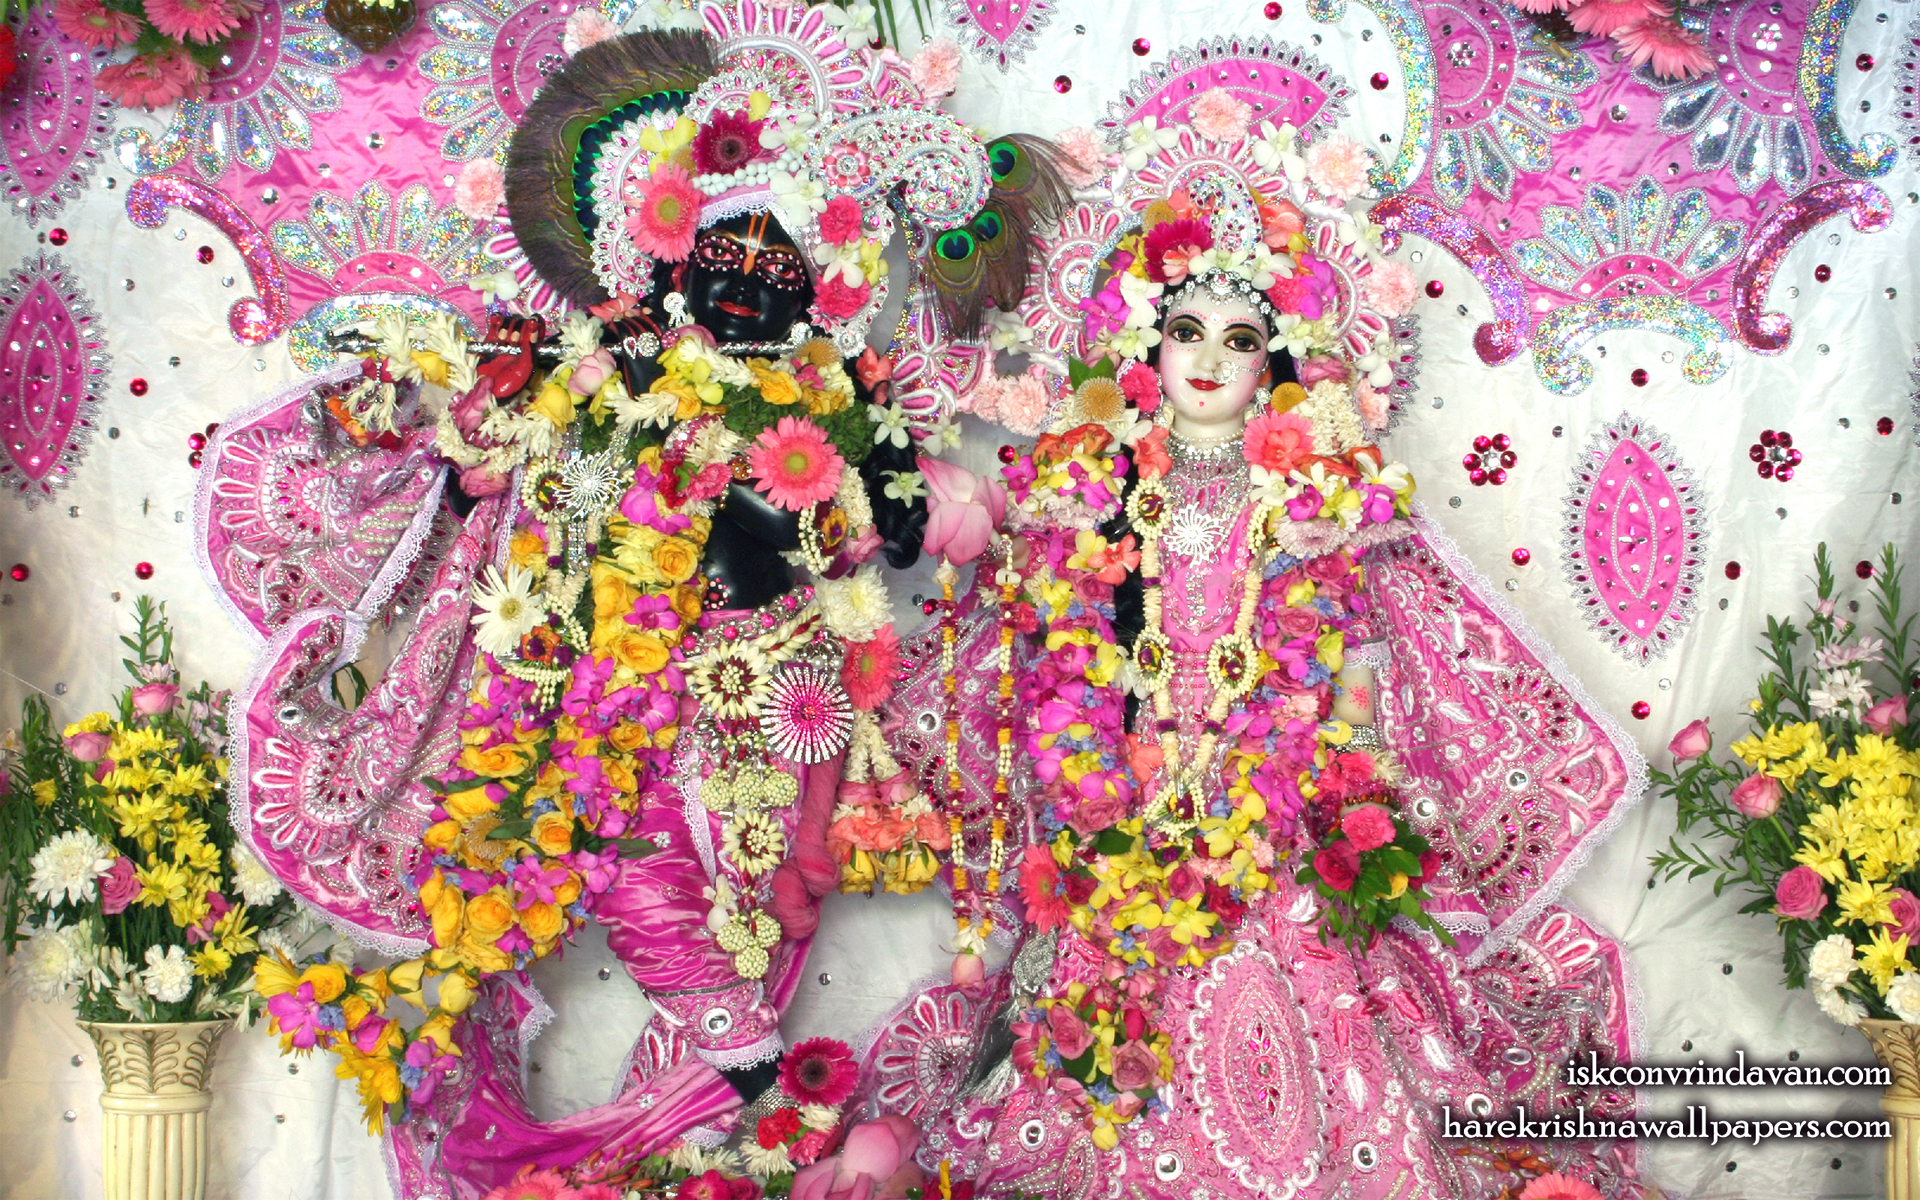 Sri Sri Radha Shyamsundar Wallpaper (015) Size 1920x1200 Download